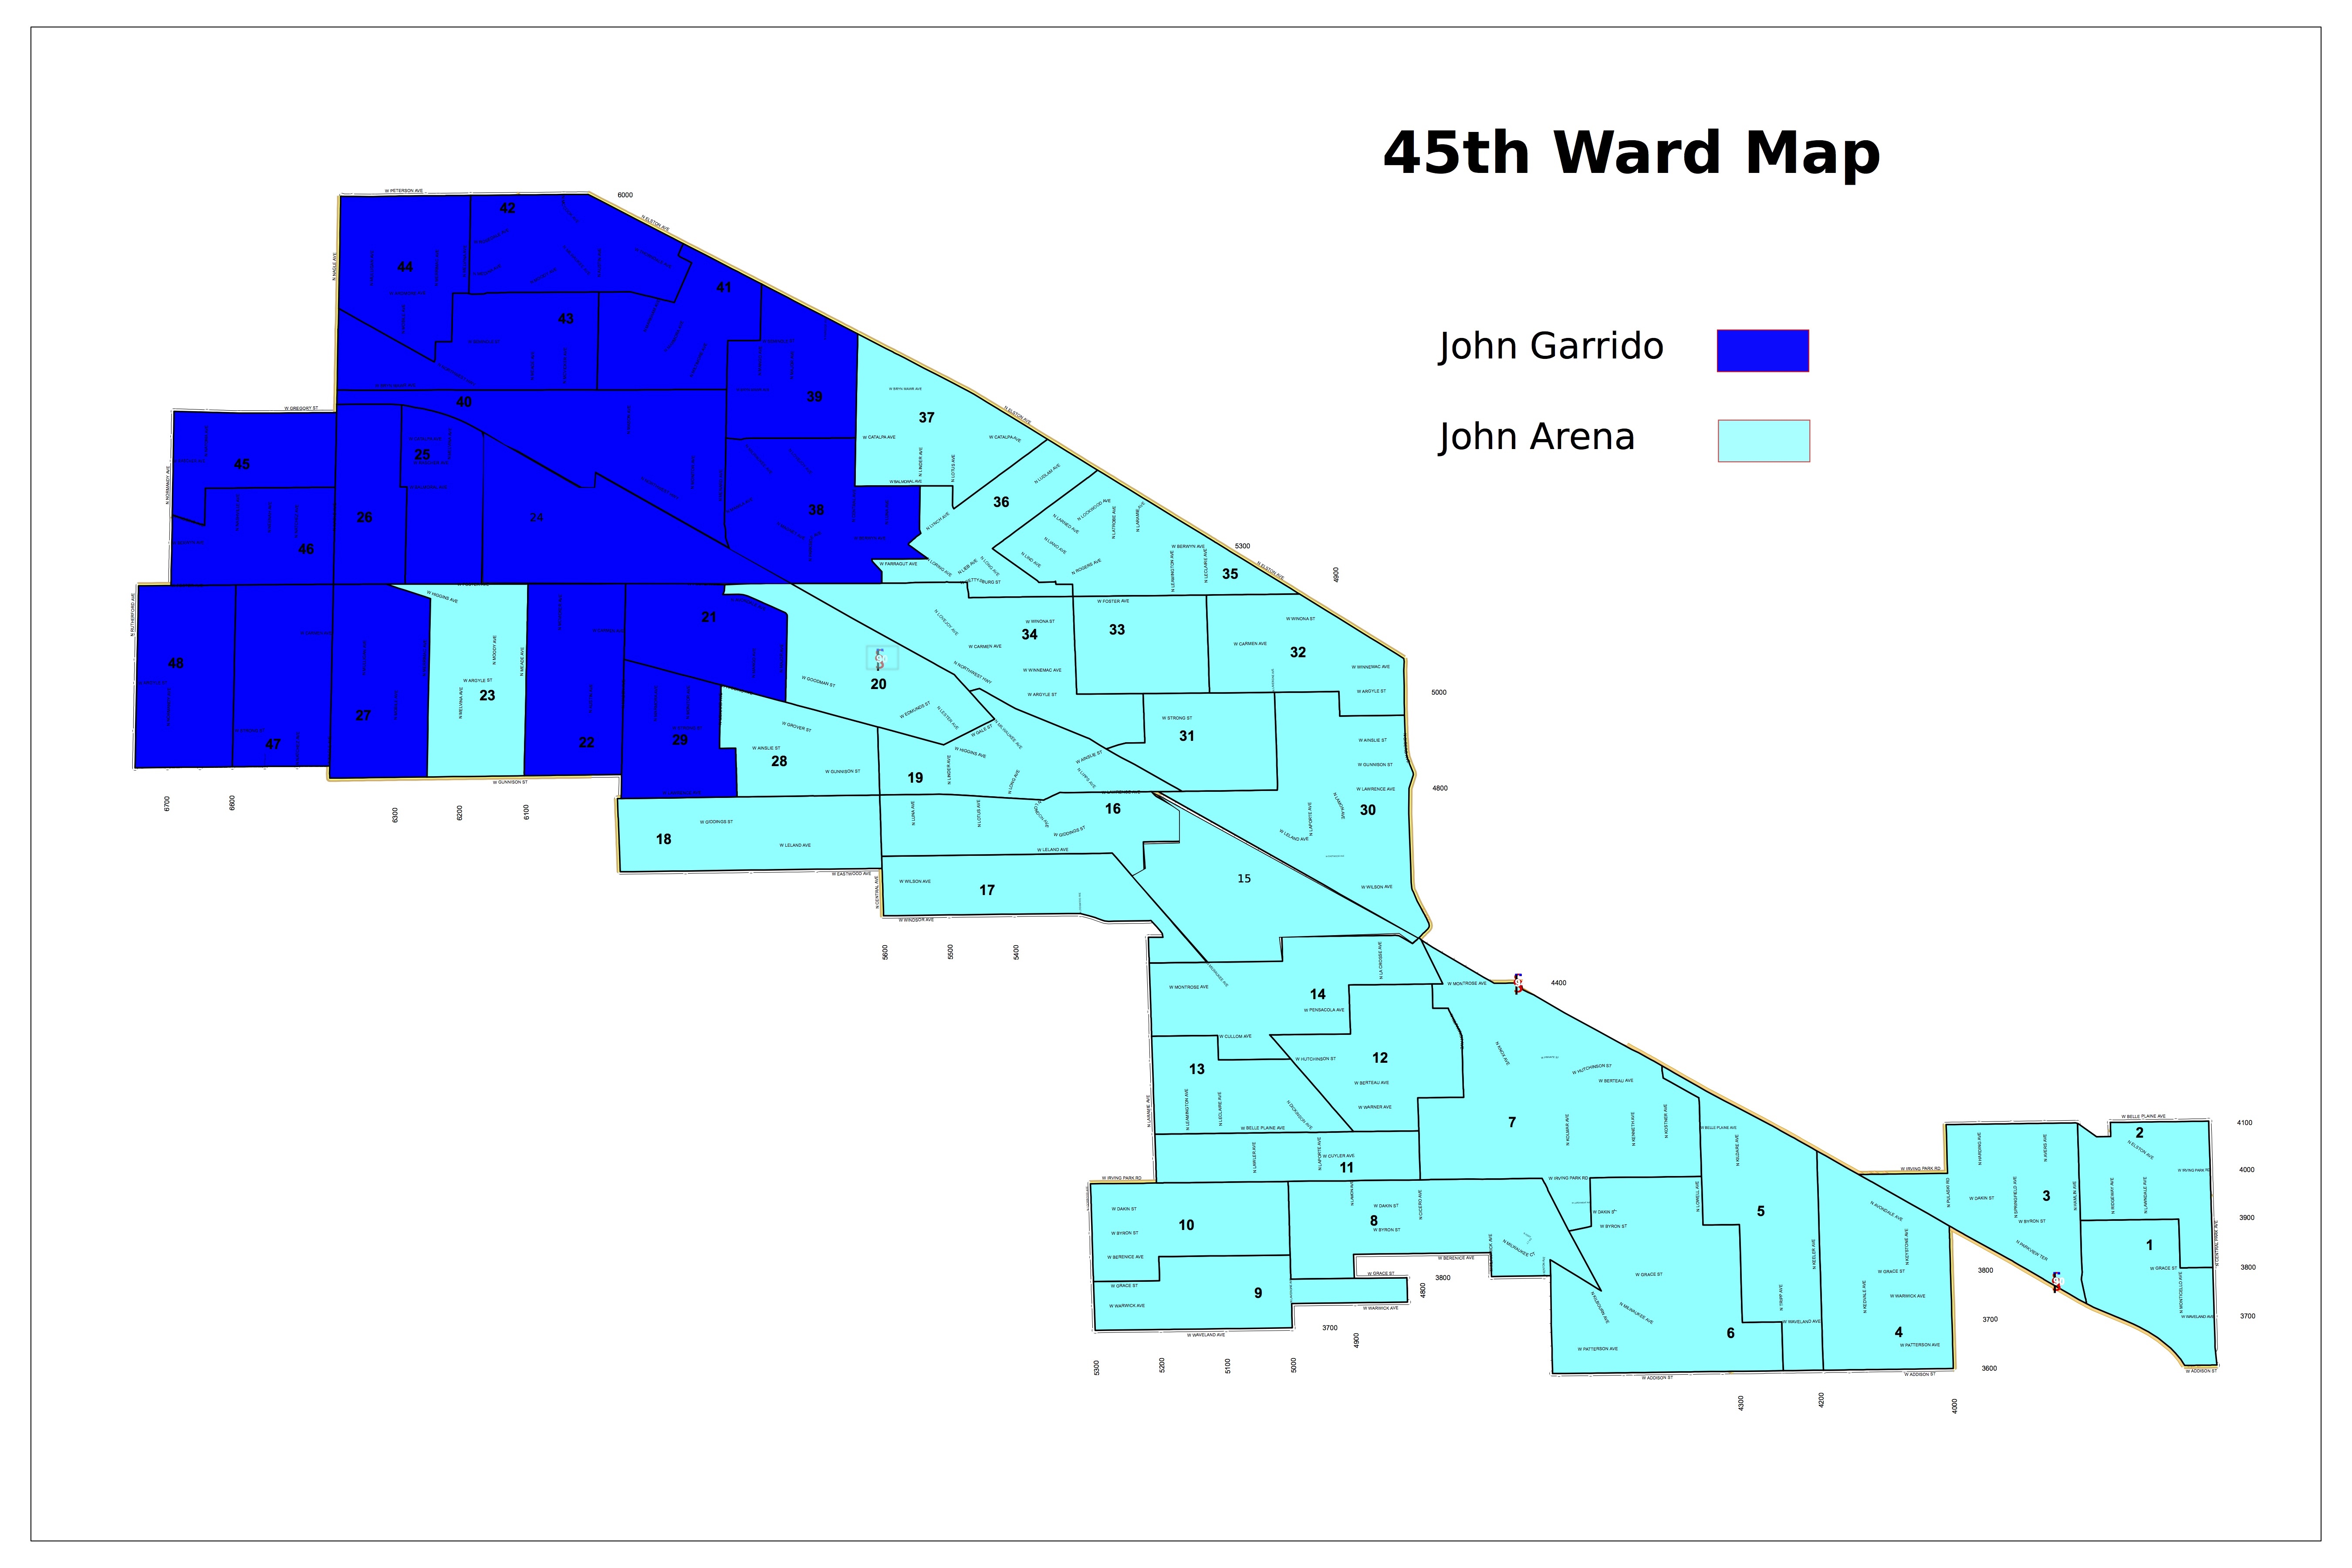 45th Ward Race Likely To Be Decided by Local Issues Despite